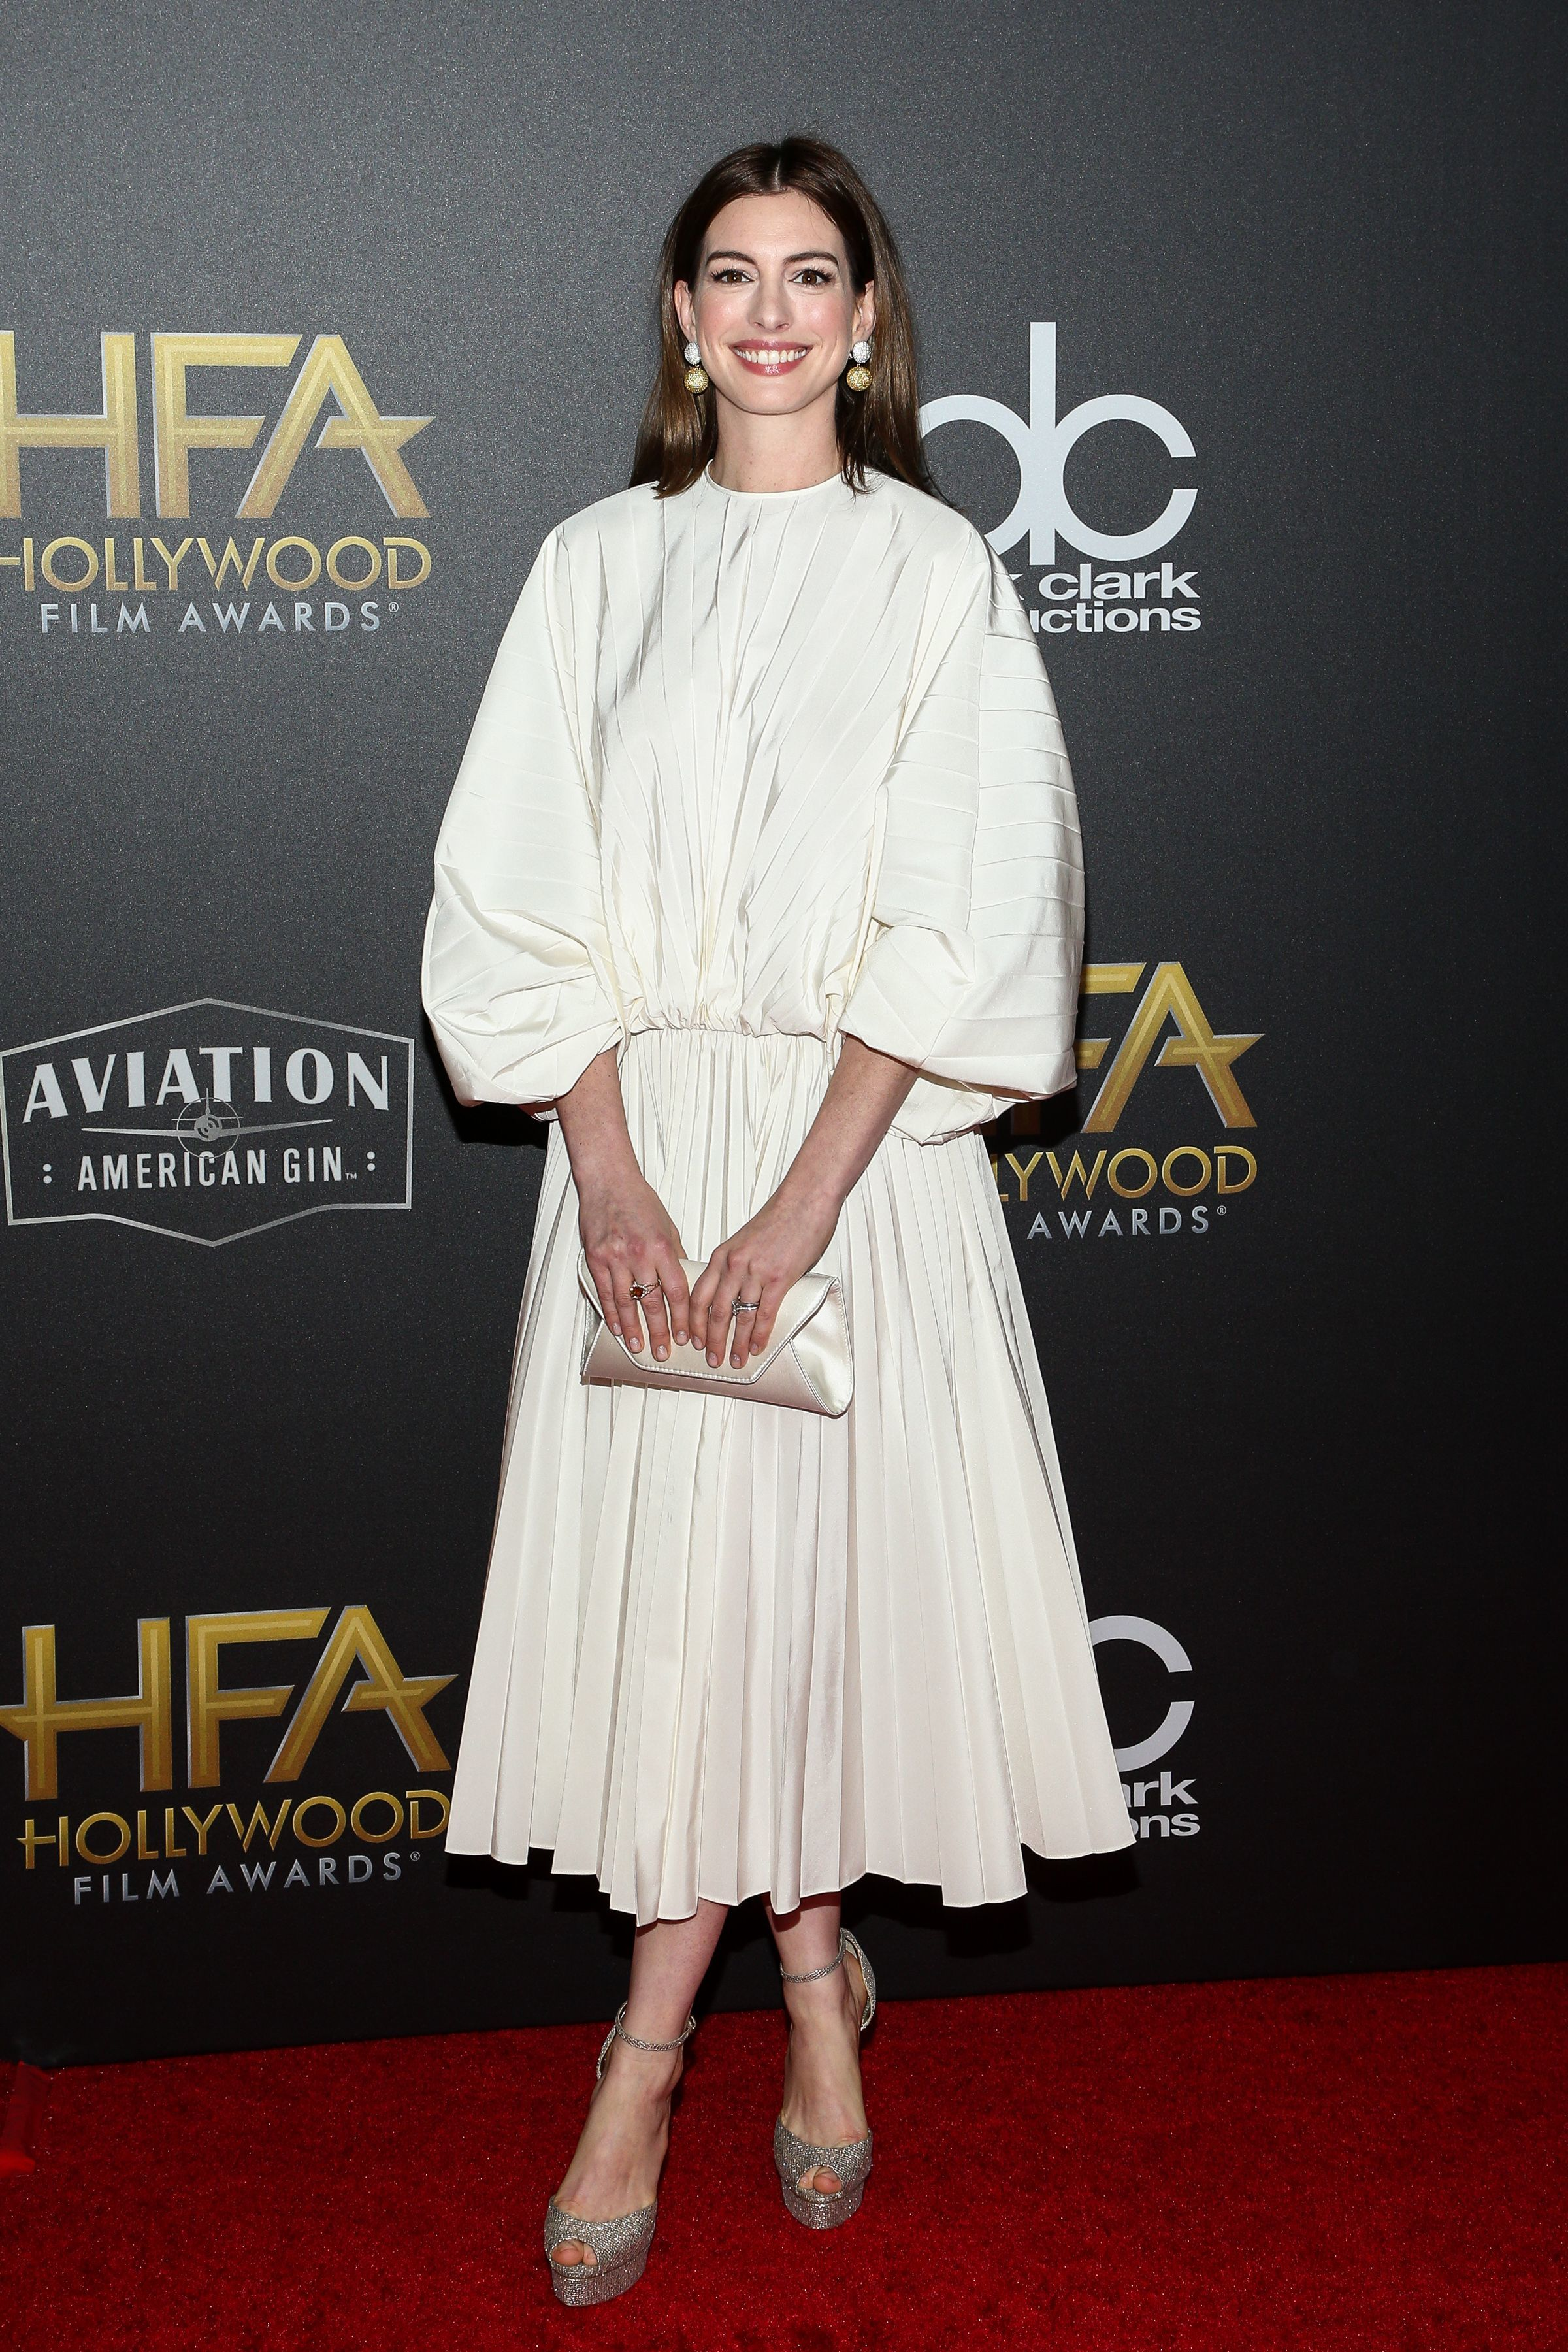 Anne Hathaway arrives at the Hollywood Film Awards, at the Beverly Hilton Hotel in Beverly Hills, California, on Nov. 4, 2018.